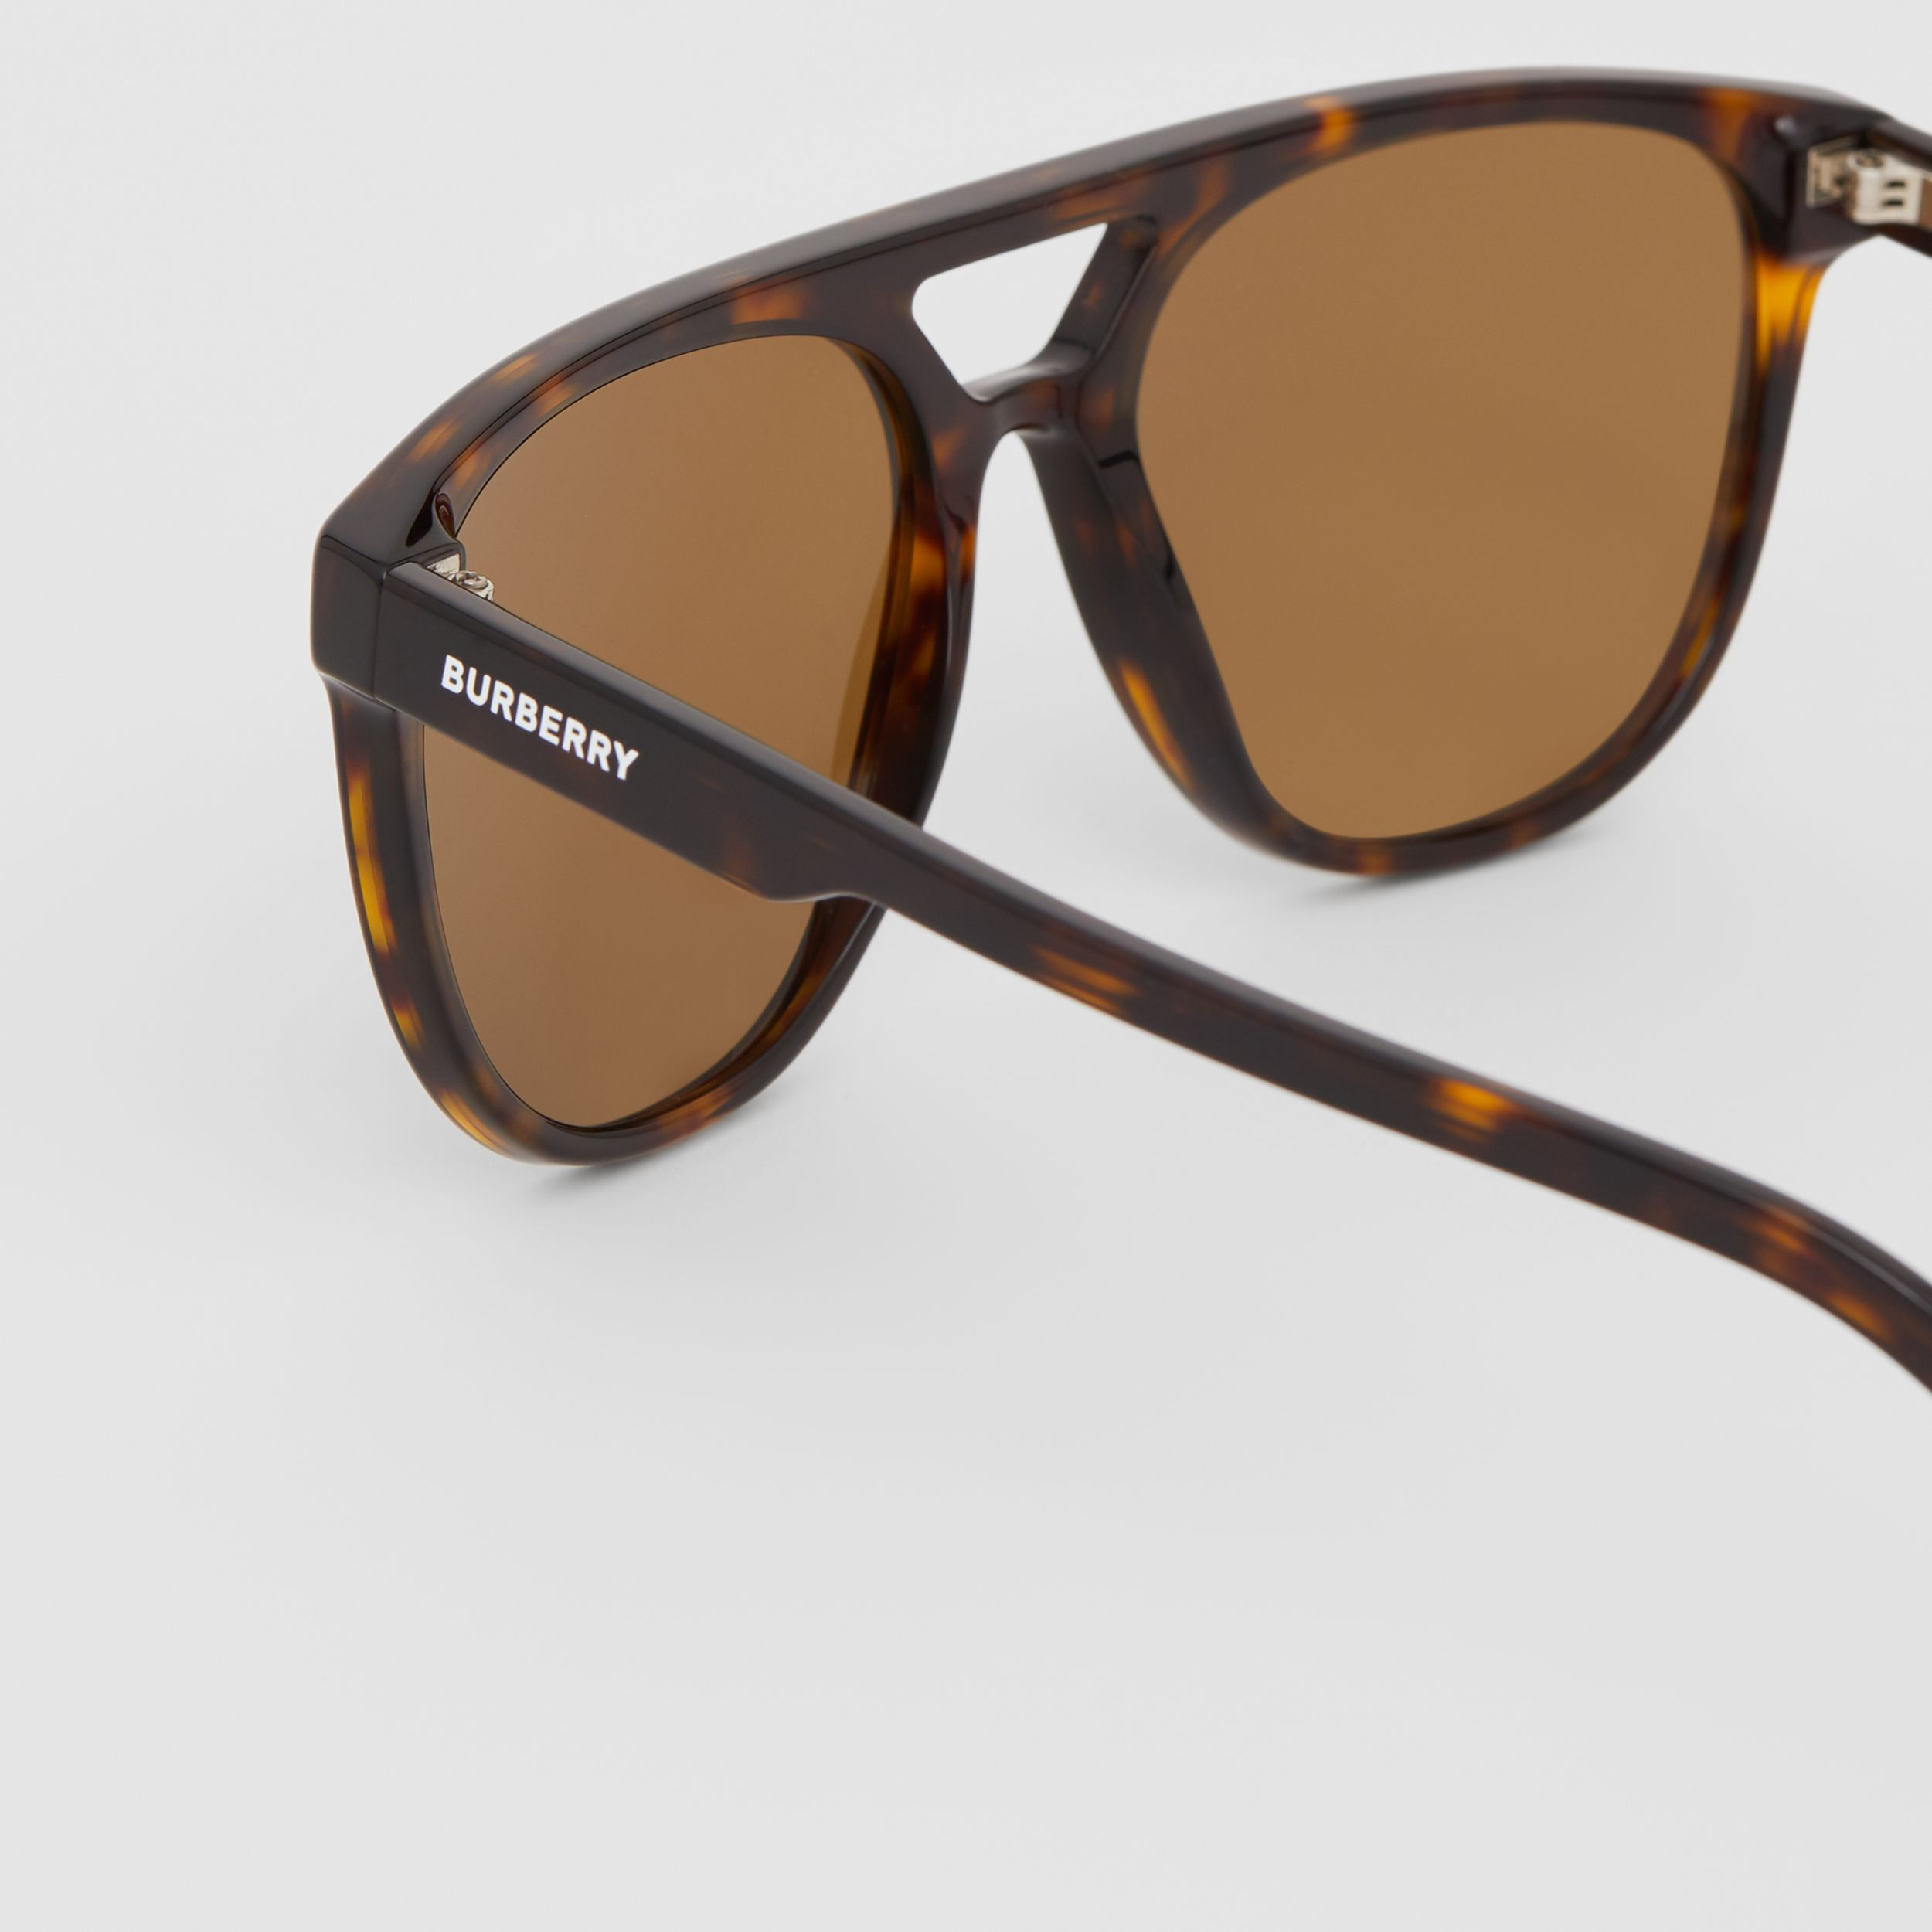 Navigator Sunglasses in Tortoiseshell - Men | Burberry - 2